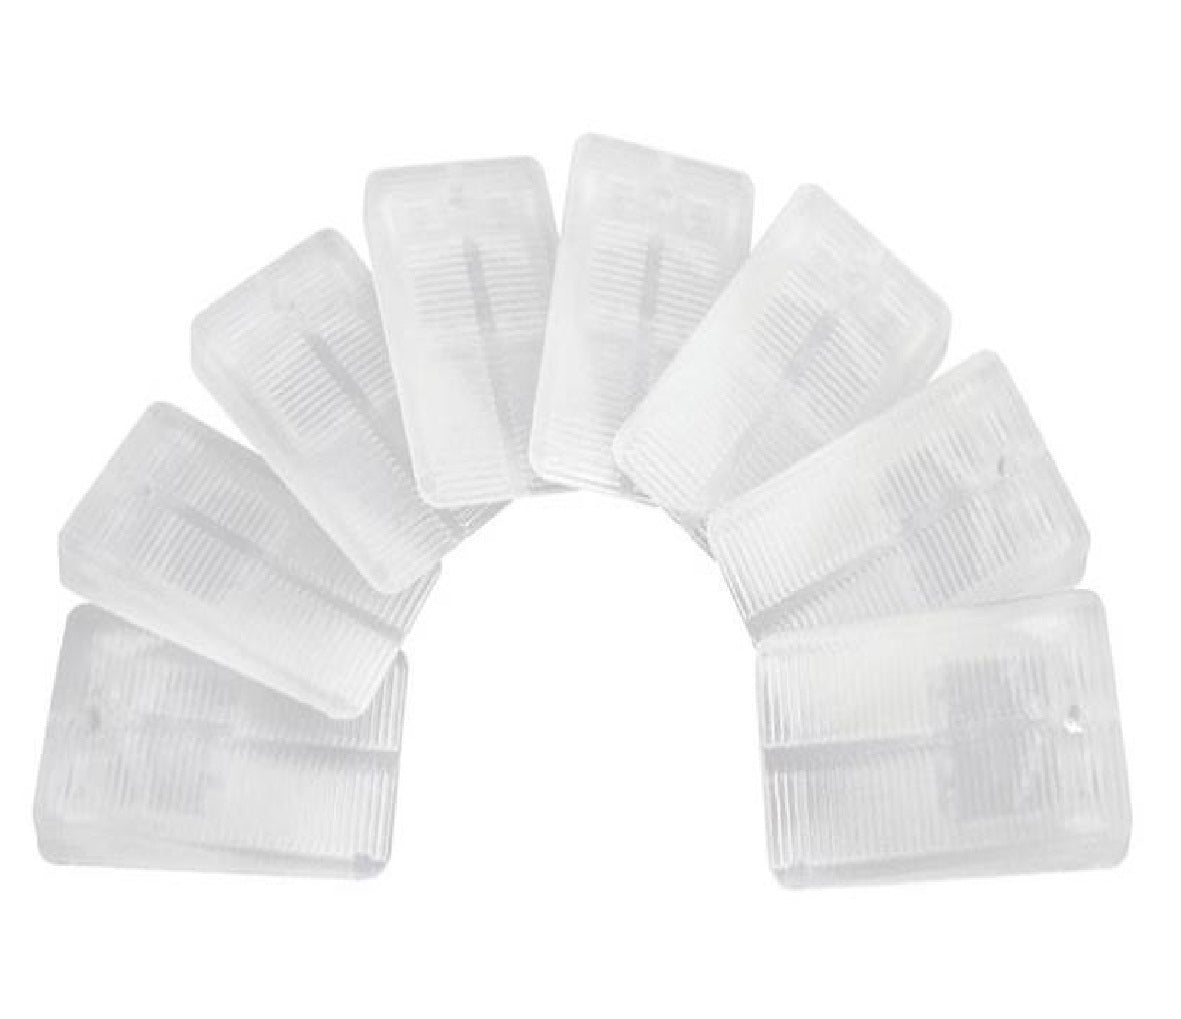 Keeney K836-49 Toilet Leveling Shims, Plastic